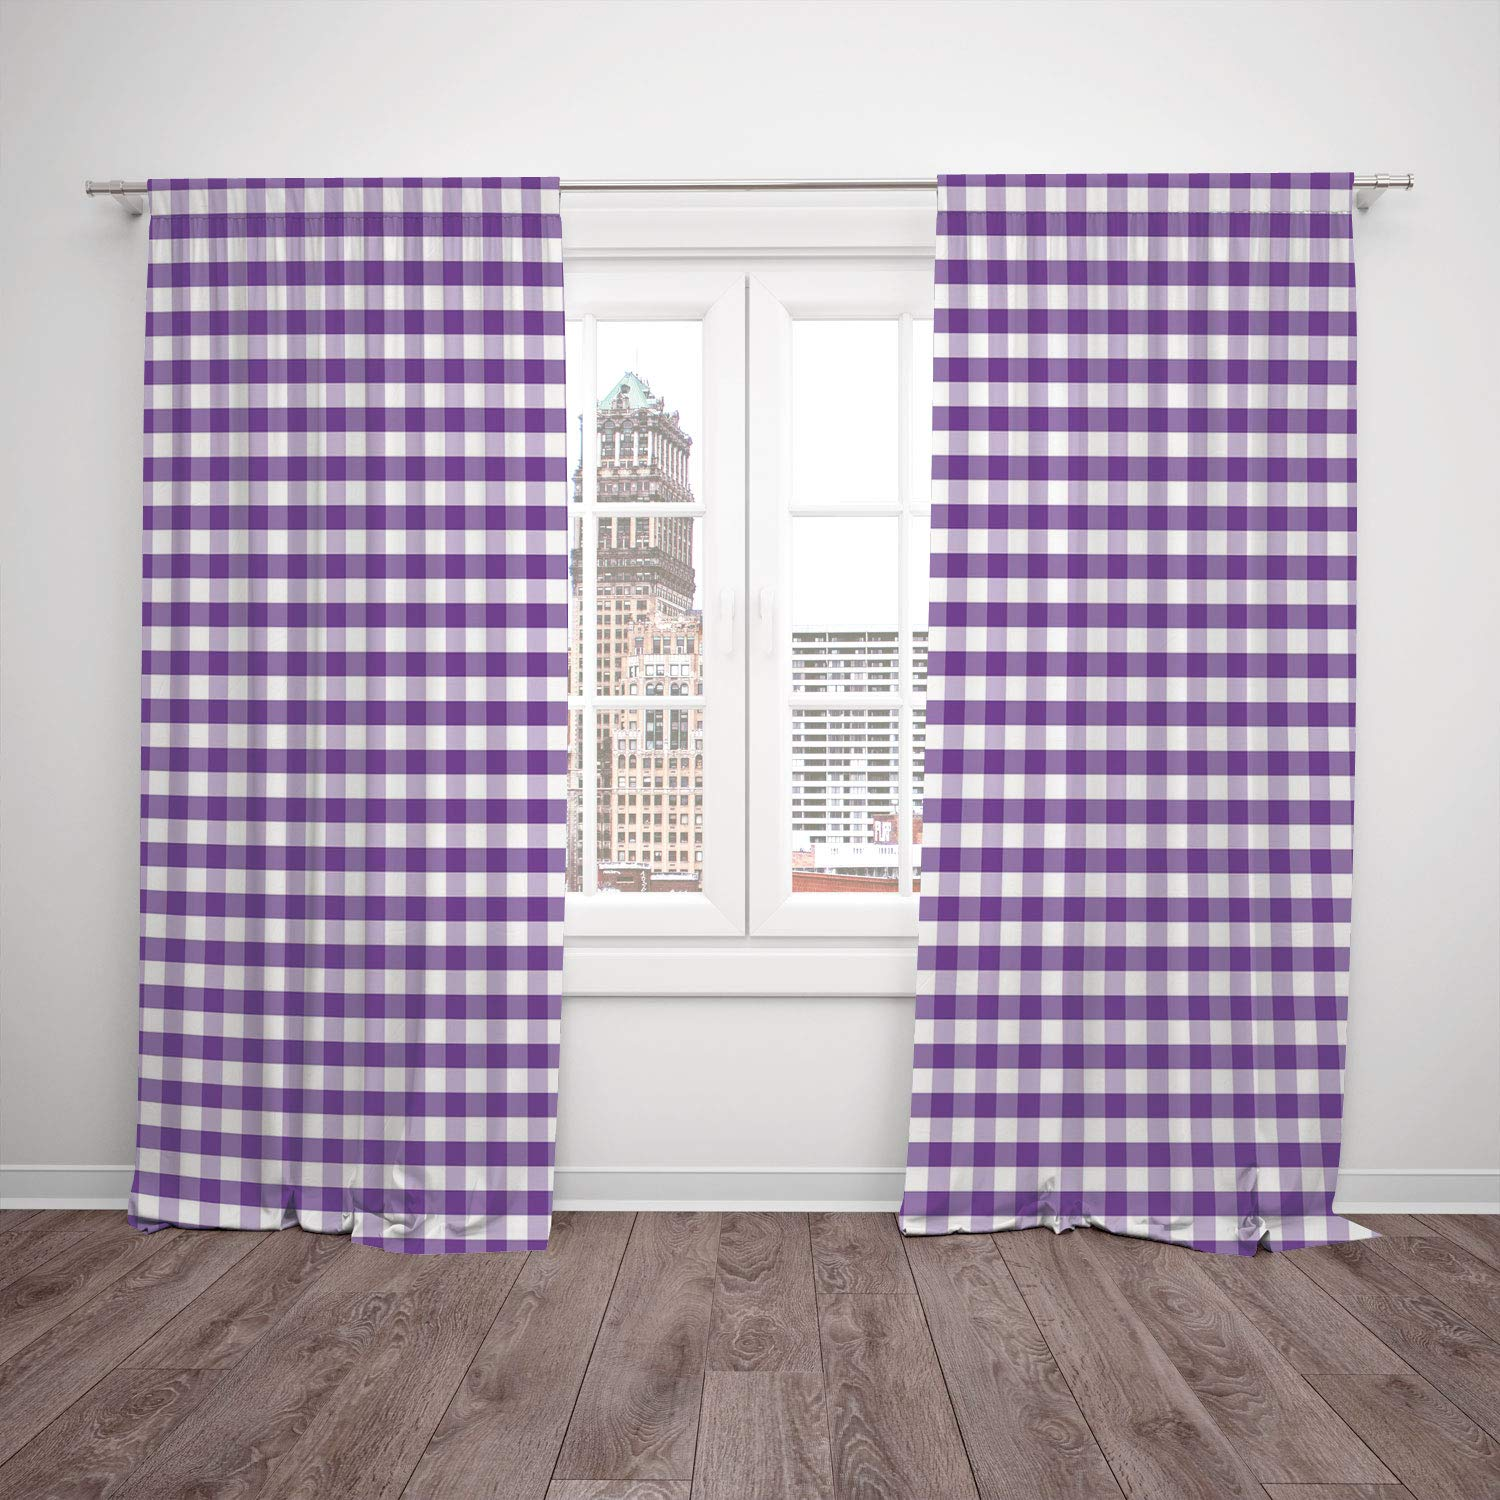 Polyester Window Drapes Kitchen Curtains,Checkered,Purple and White Colored Gingham Checks Rows Picnic Theme Vintage Style Print Decorative,Purple White,Living Room Bedroom Kitchen Cafe Window Drapes